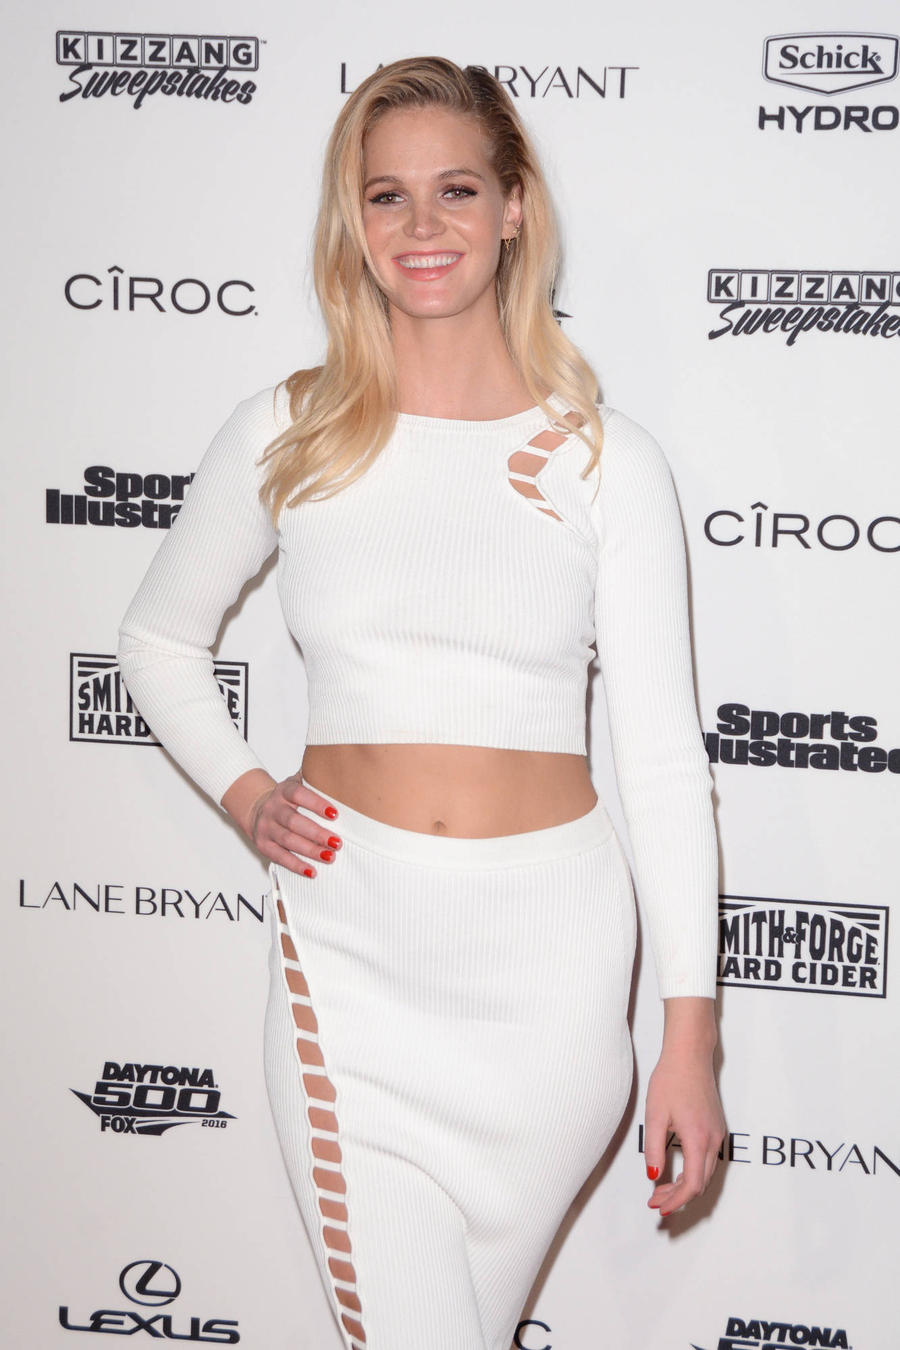 Erin Heatherton Blames Depression On Pressure To Stay Thin